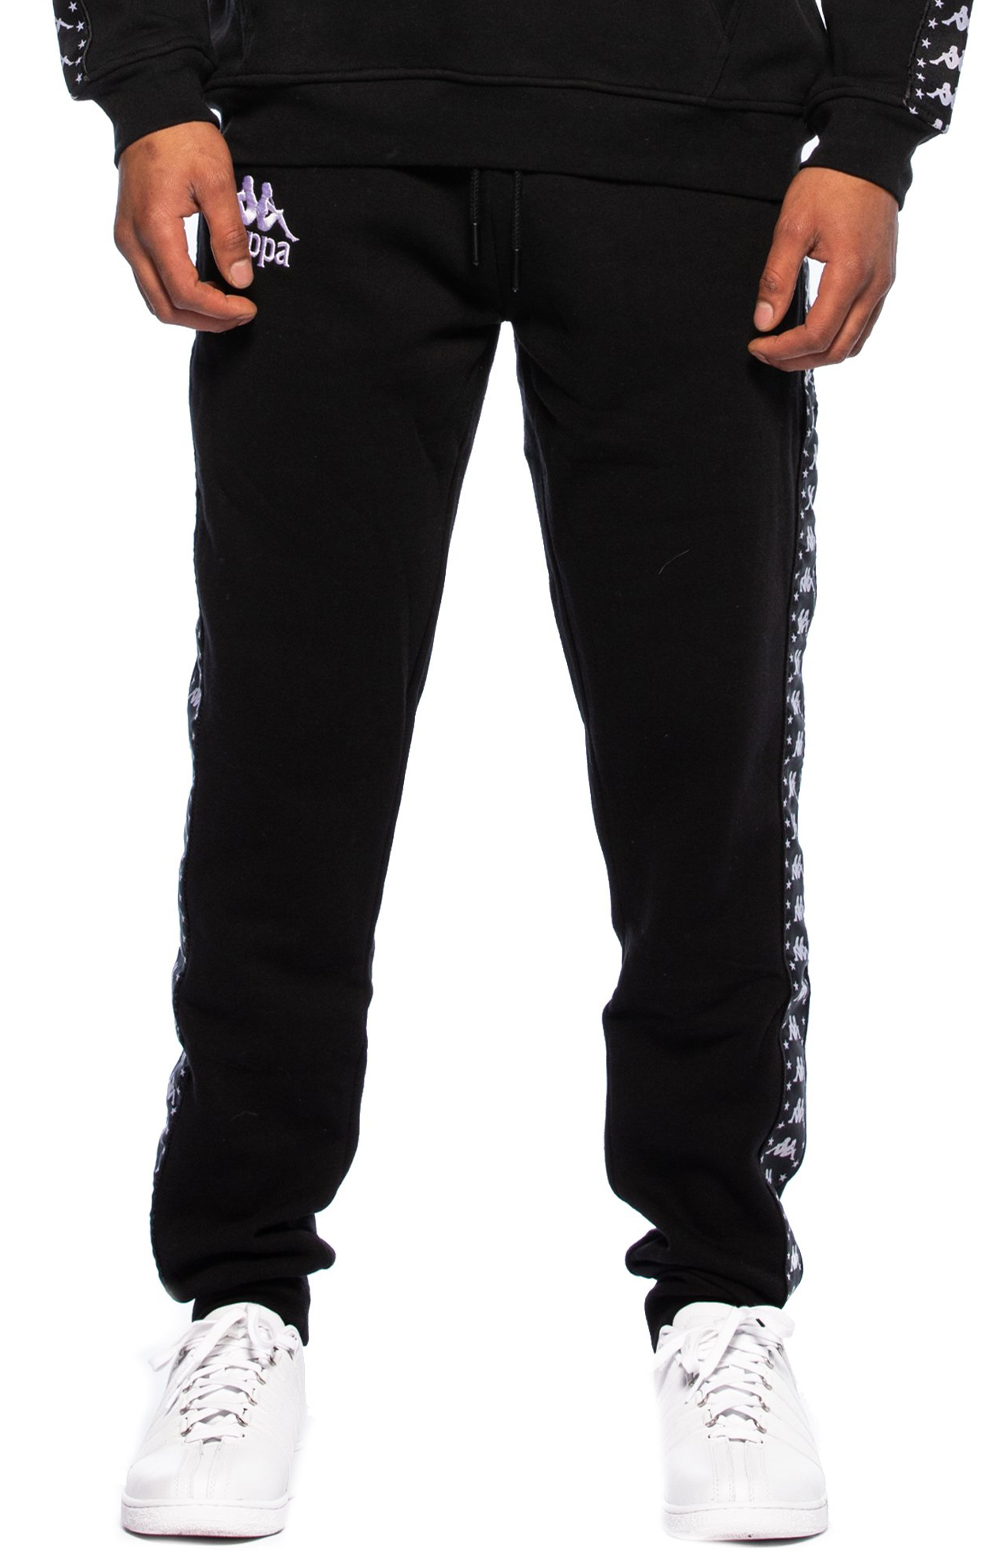 Authentic Amsag Slim Fit Sweatpants - Black/White 2